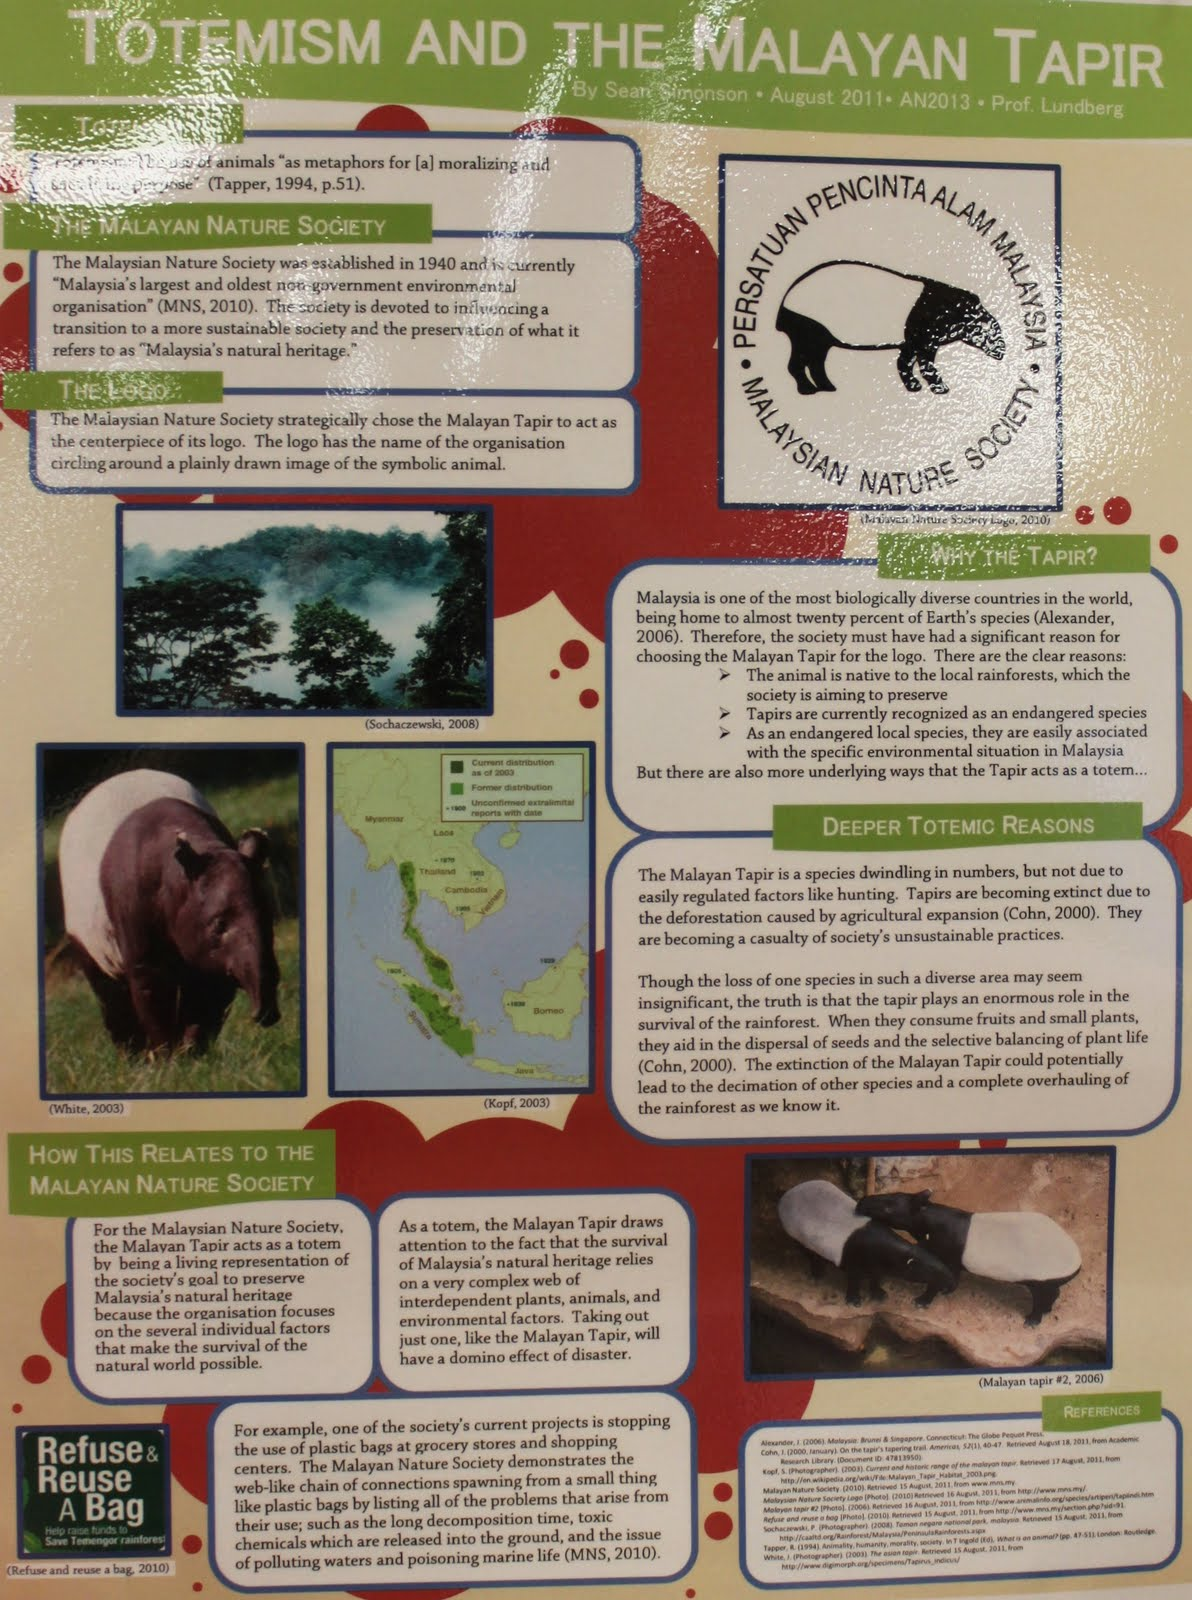 JCU Library News: Anthropology student academic posters